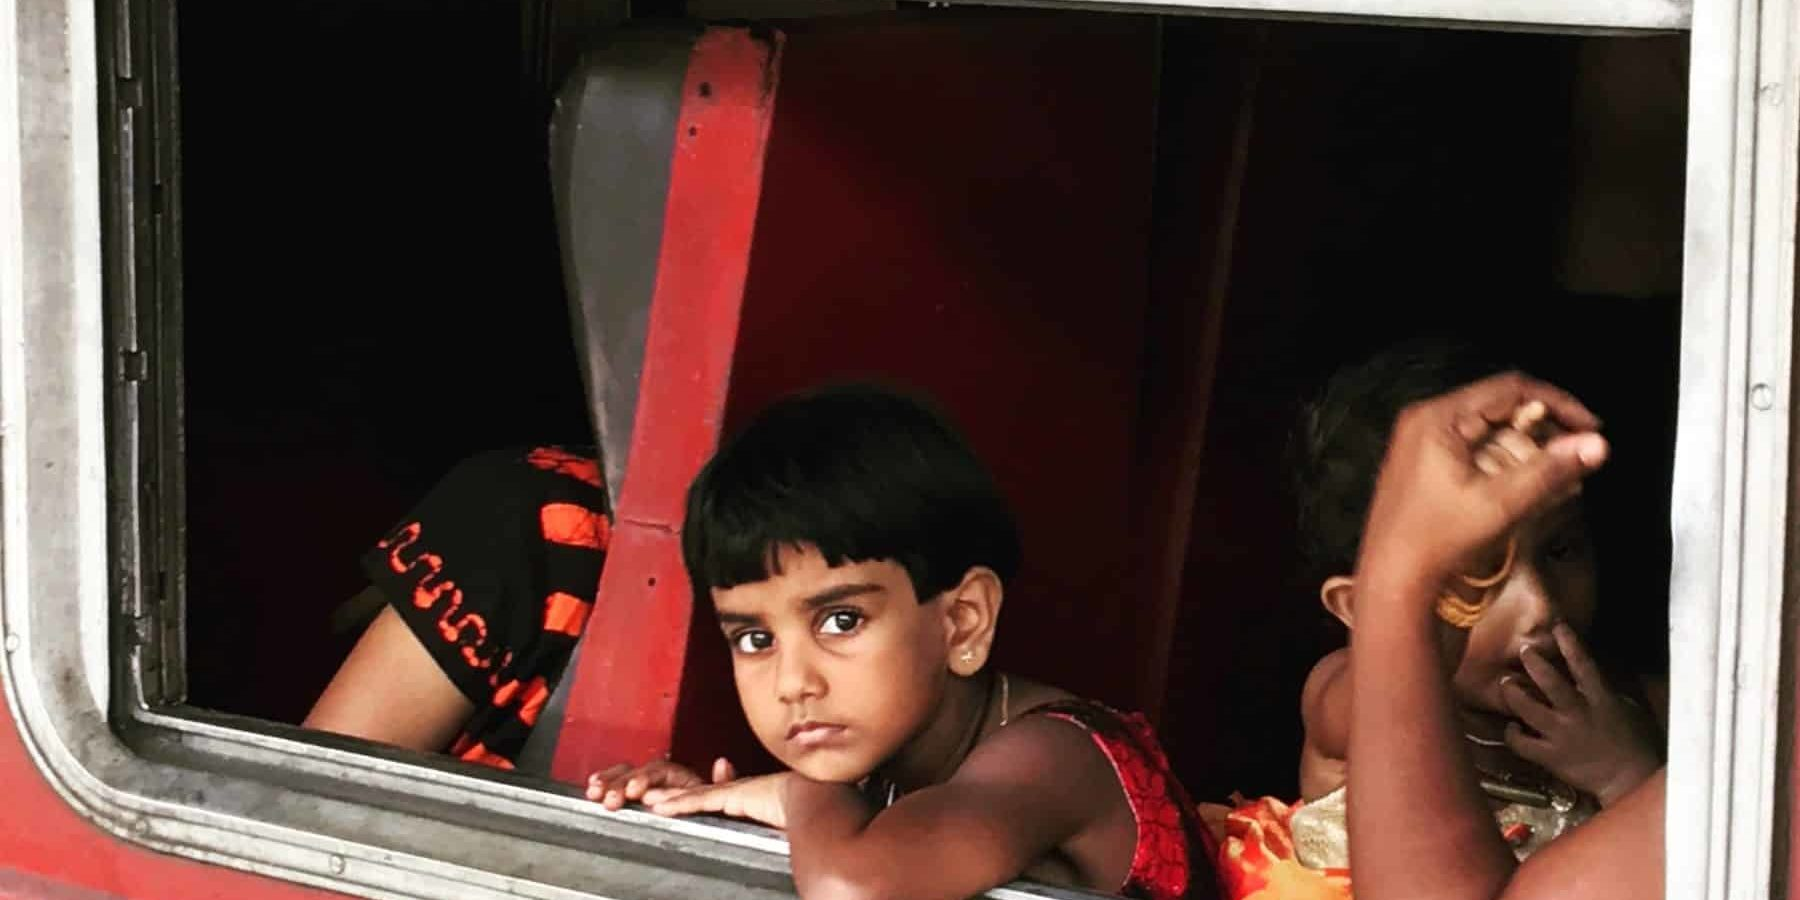 Child on train in India looking out of the window